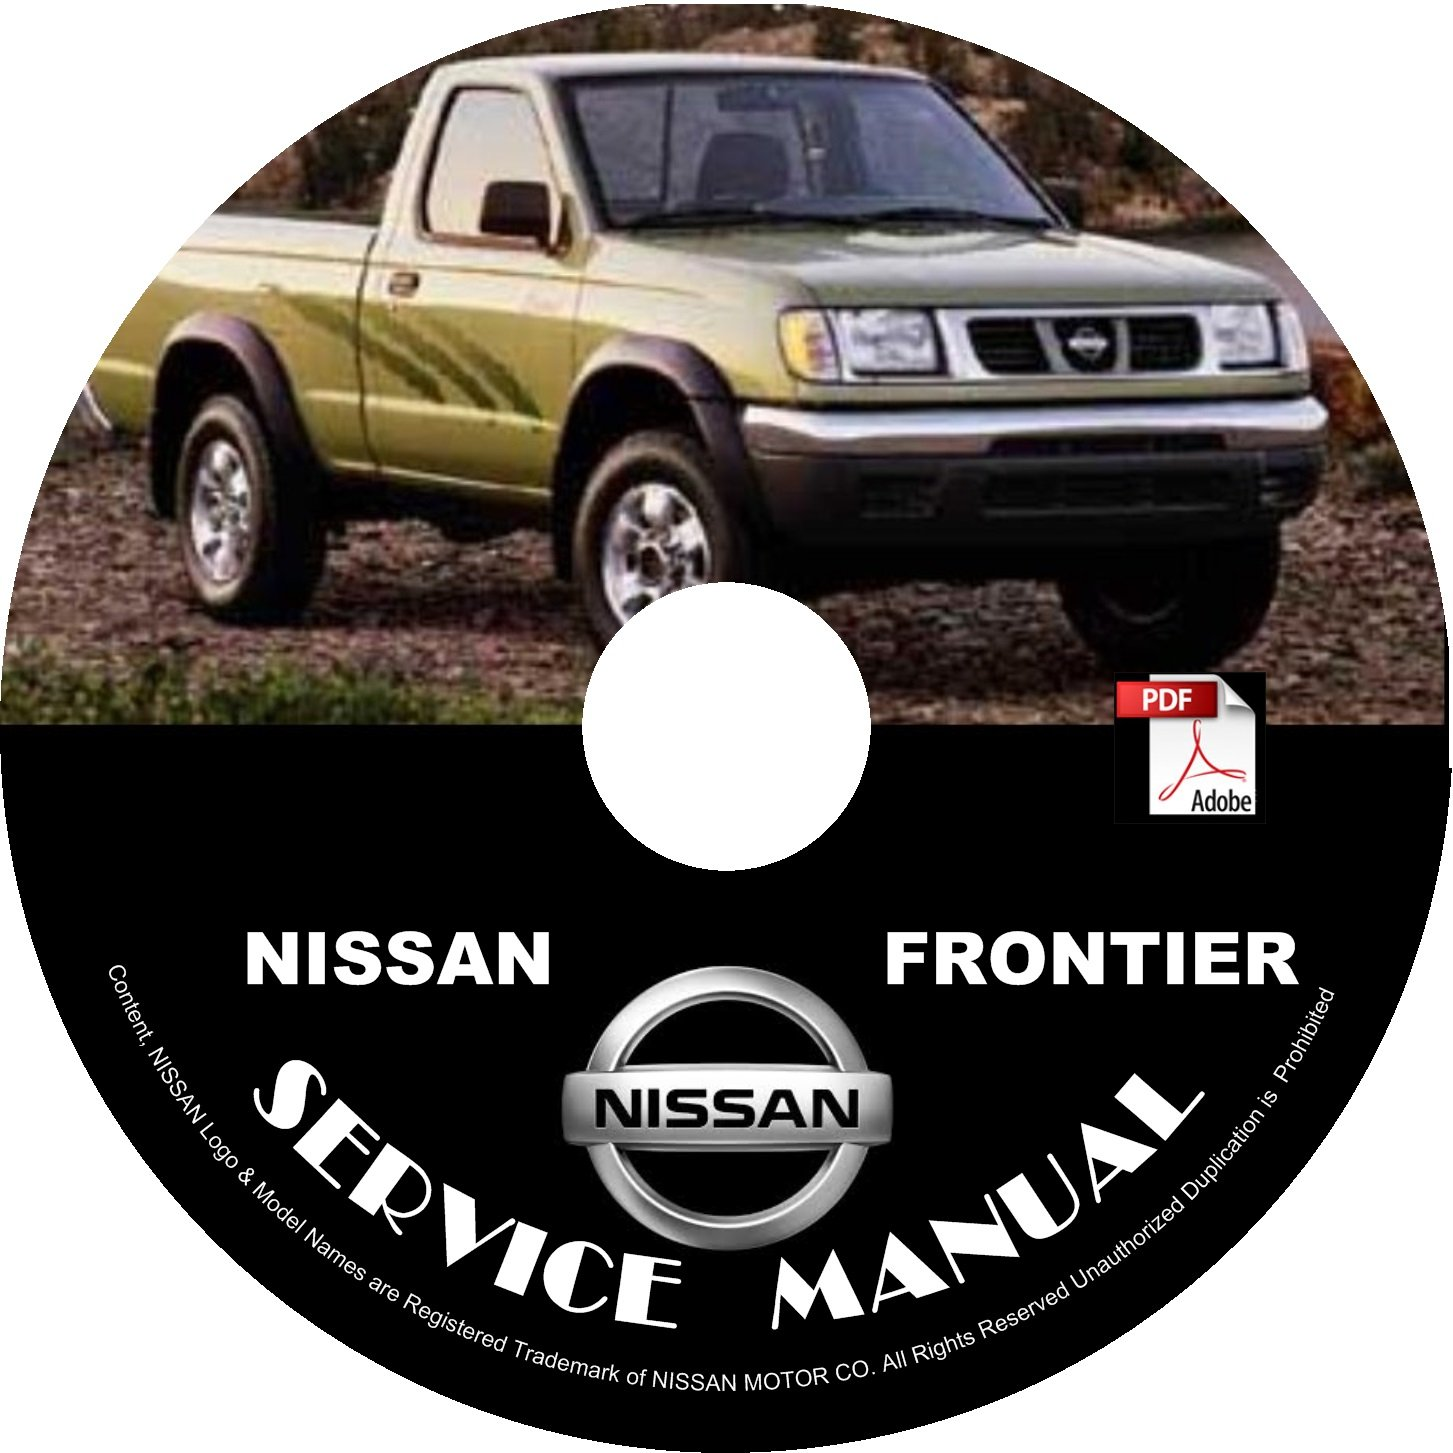 1999 Nissan Frontier Service Repair Shop Manual on CD (6-cyl. 3.3L VG engine).